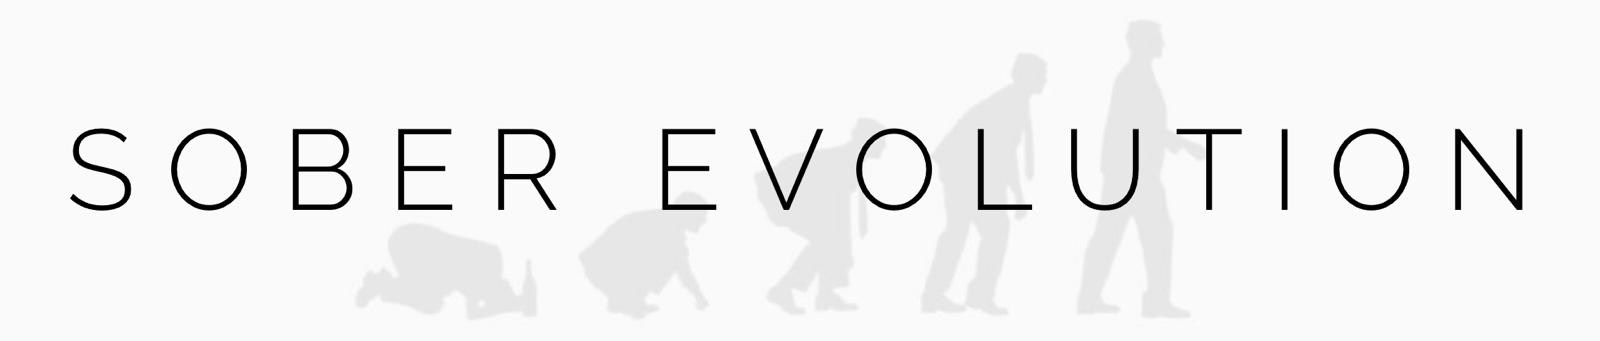 Sober Evolution Logo